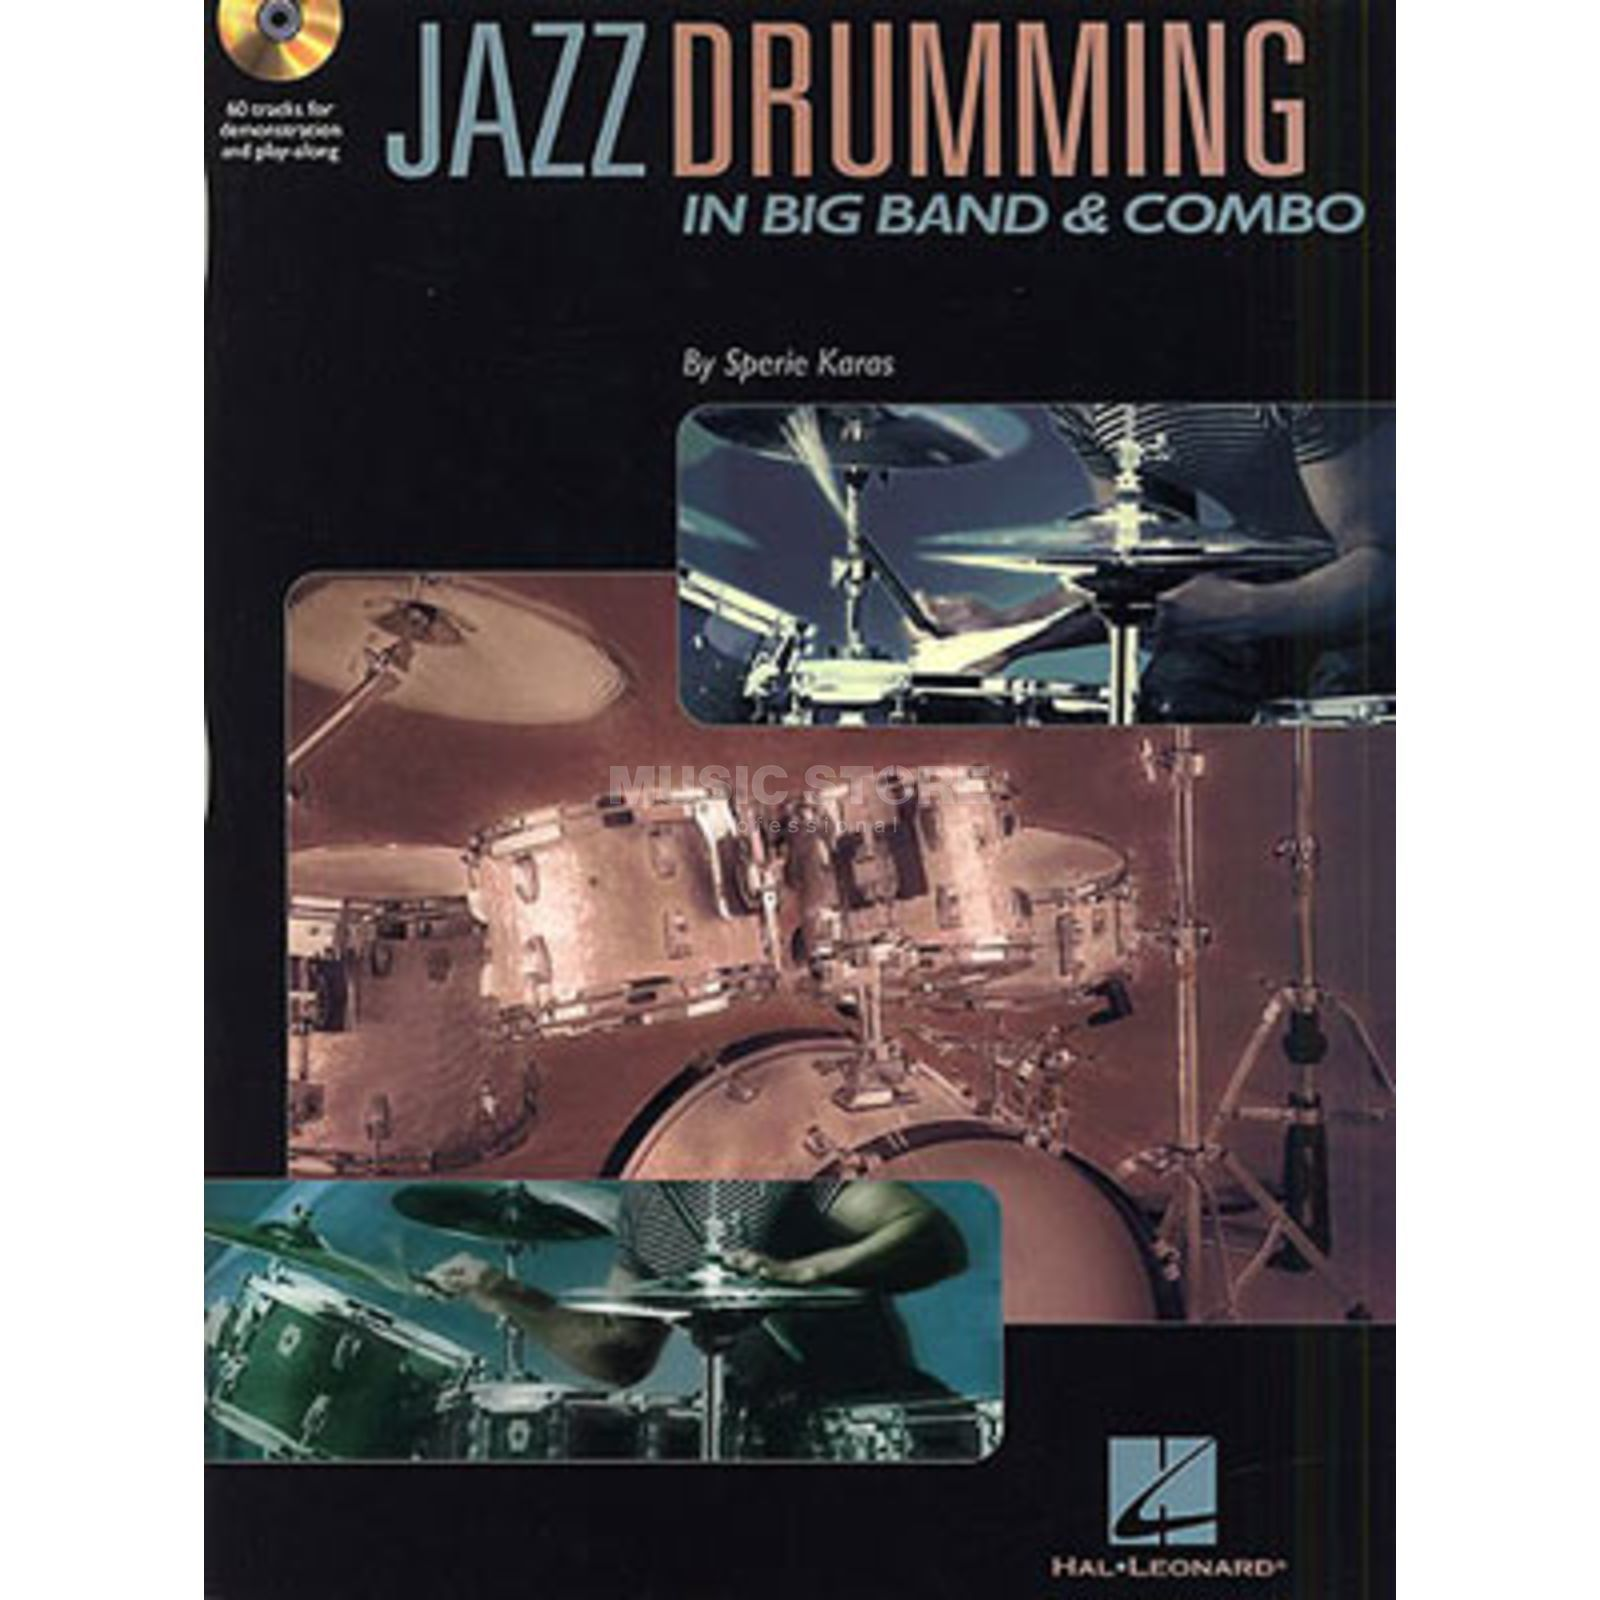 Hal Leonard Jazz Drumming in Big Band Sperie Karas,inkl. CD Produktbild